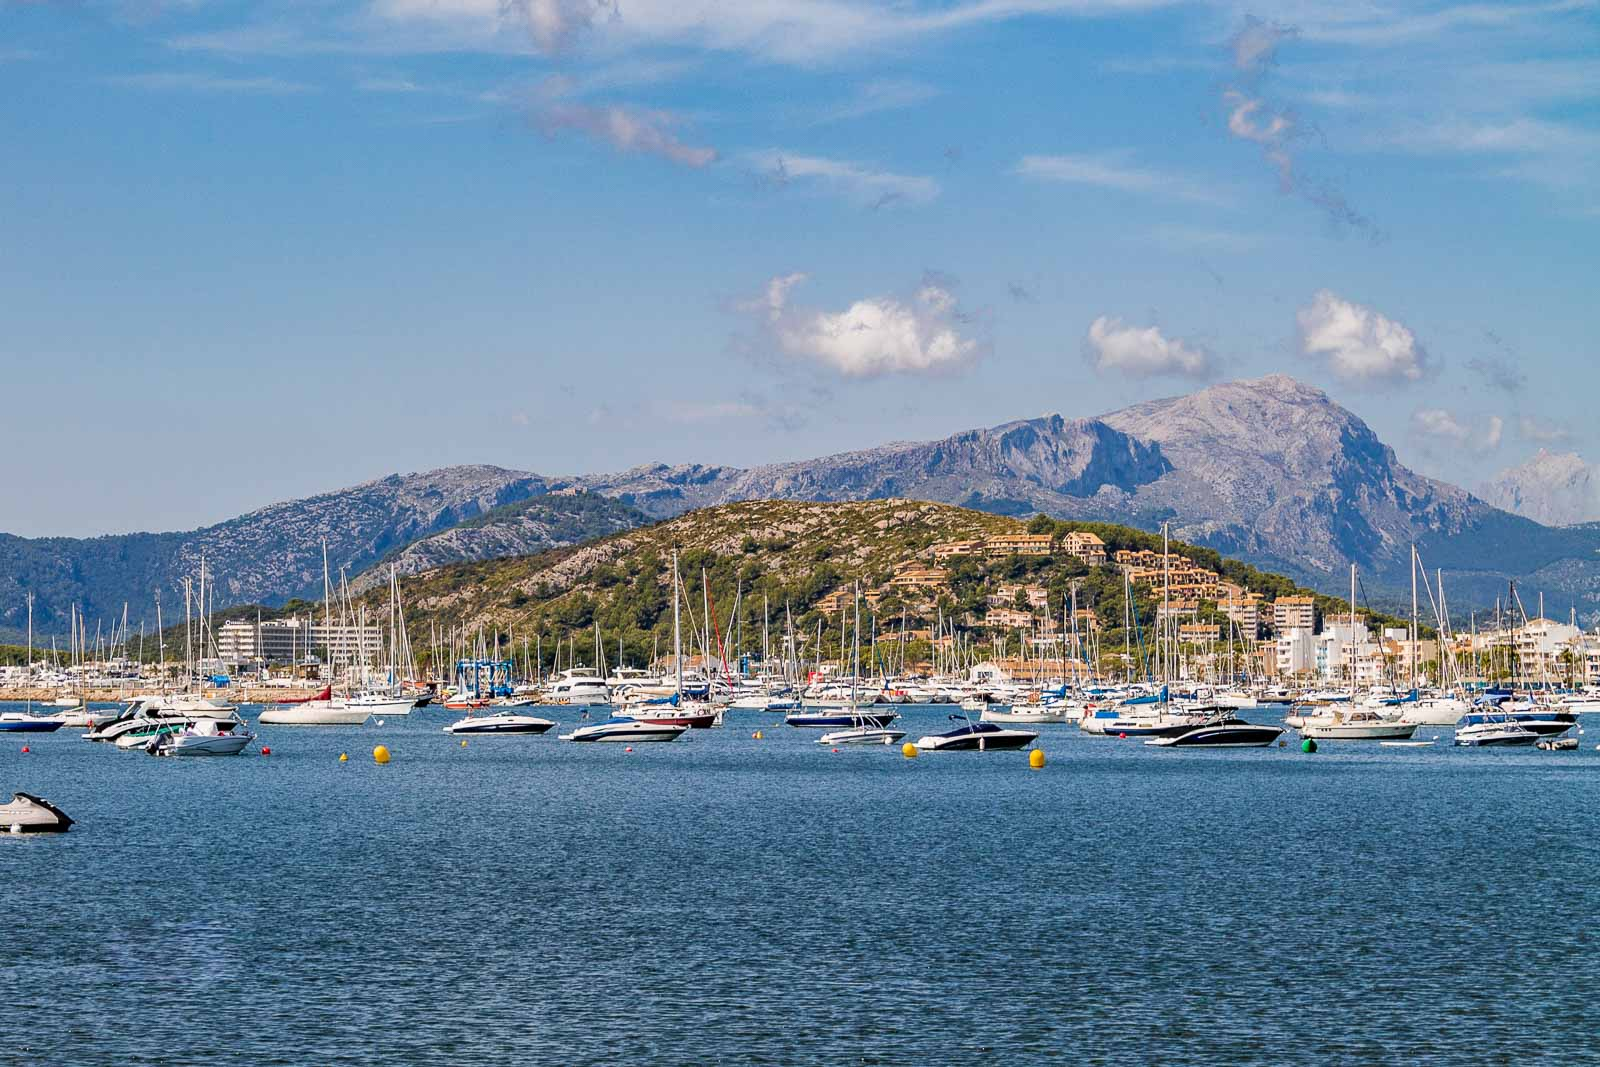 Panoramic view of Port de Pollenca, Mallorca